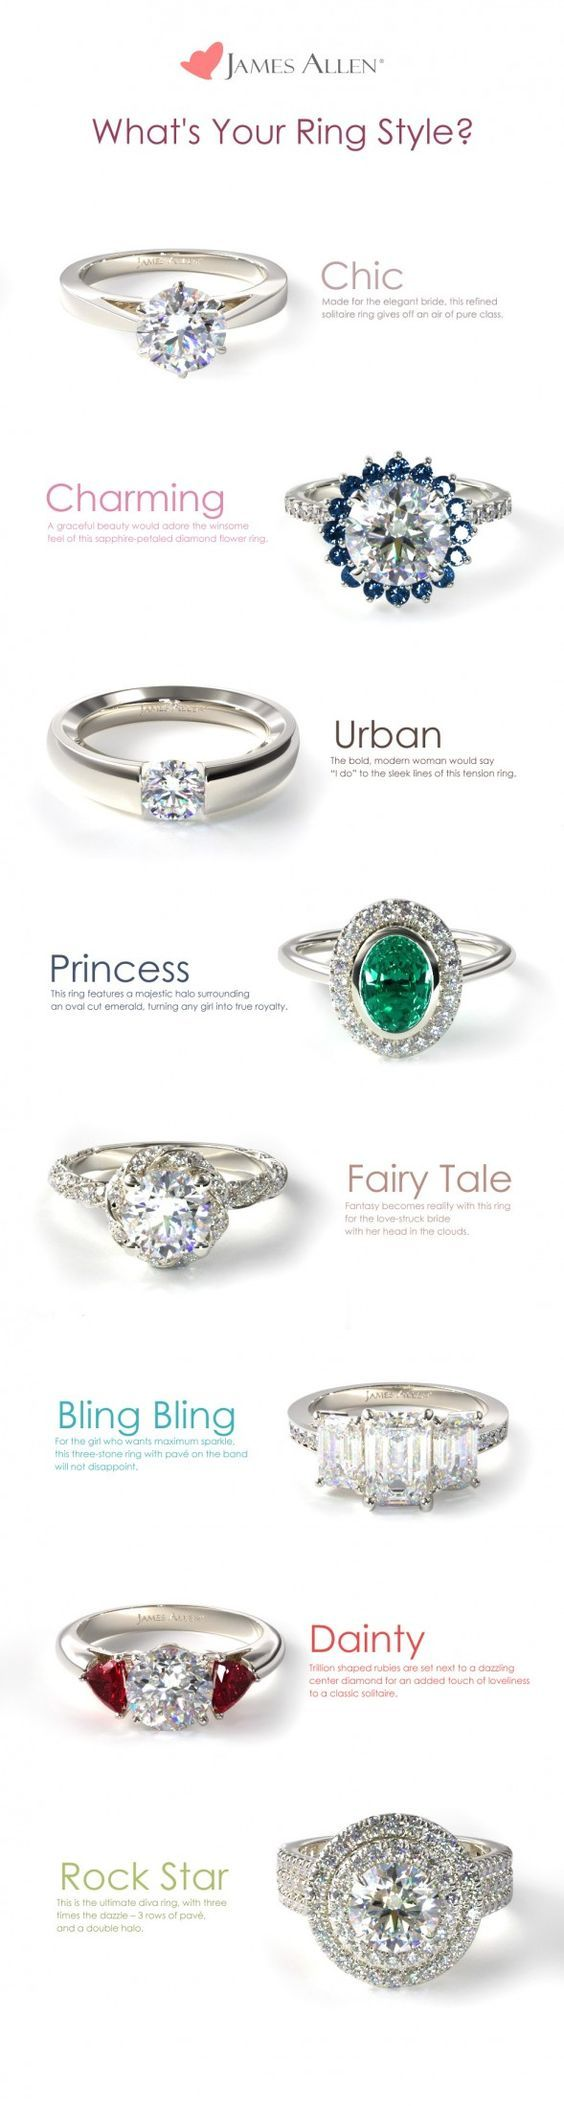 engagement rings and wedding rings / http://www.himisspuff.com/engagement-rings-wedding-rings/11/